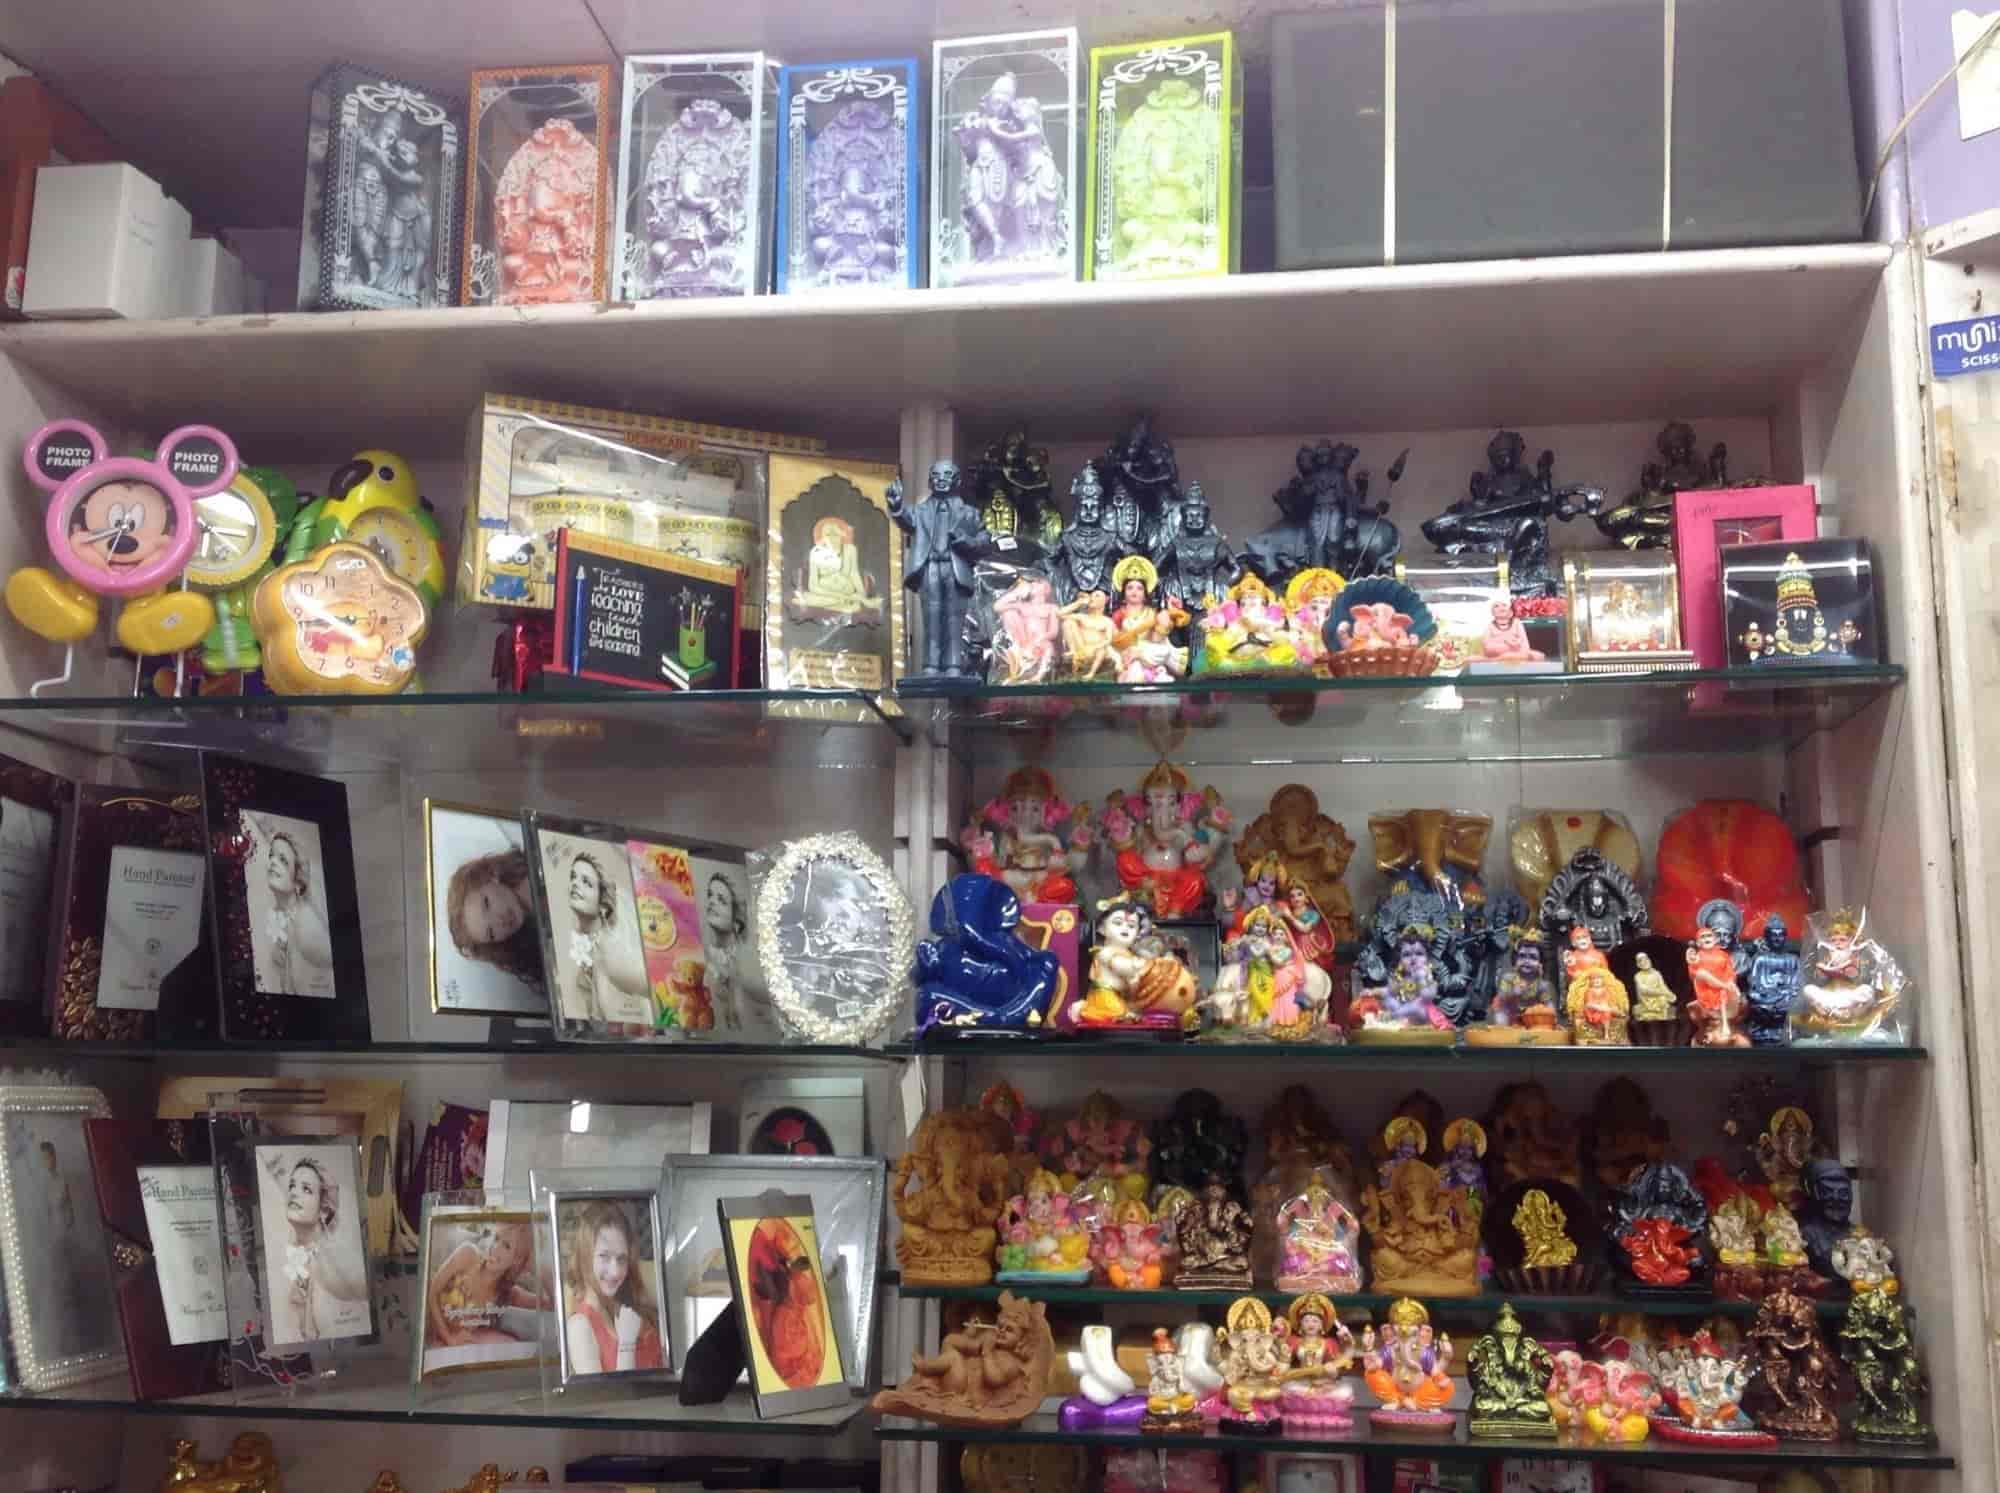 Satyam Greetings And Gifts Gangapur Road Satyam Greetings Gifts